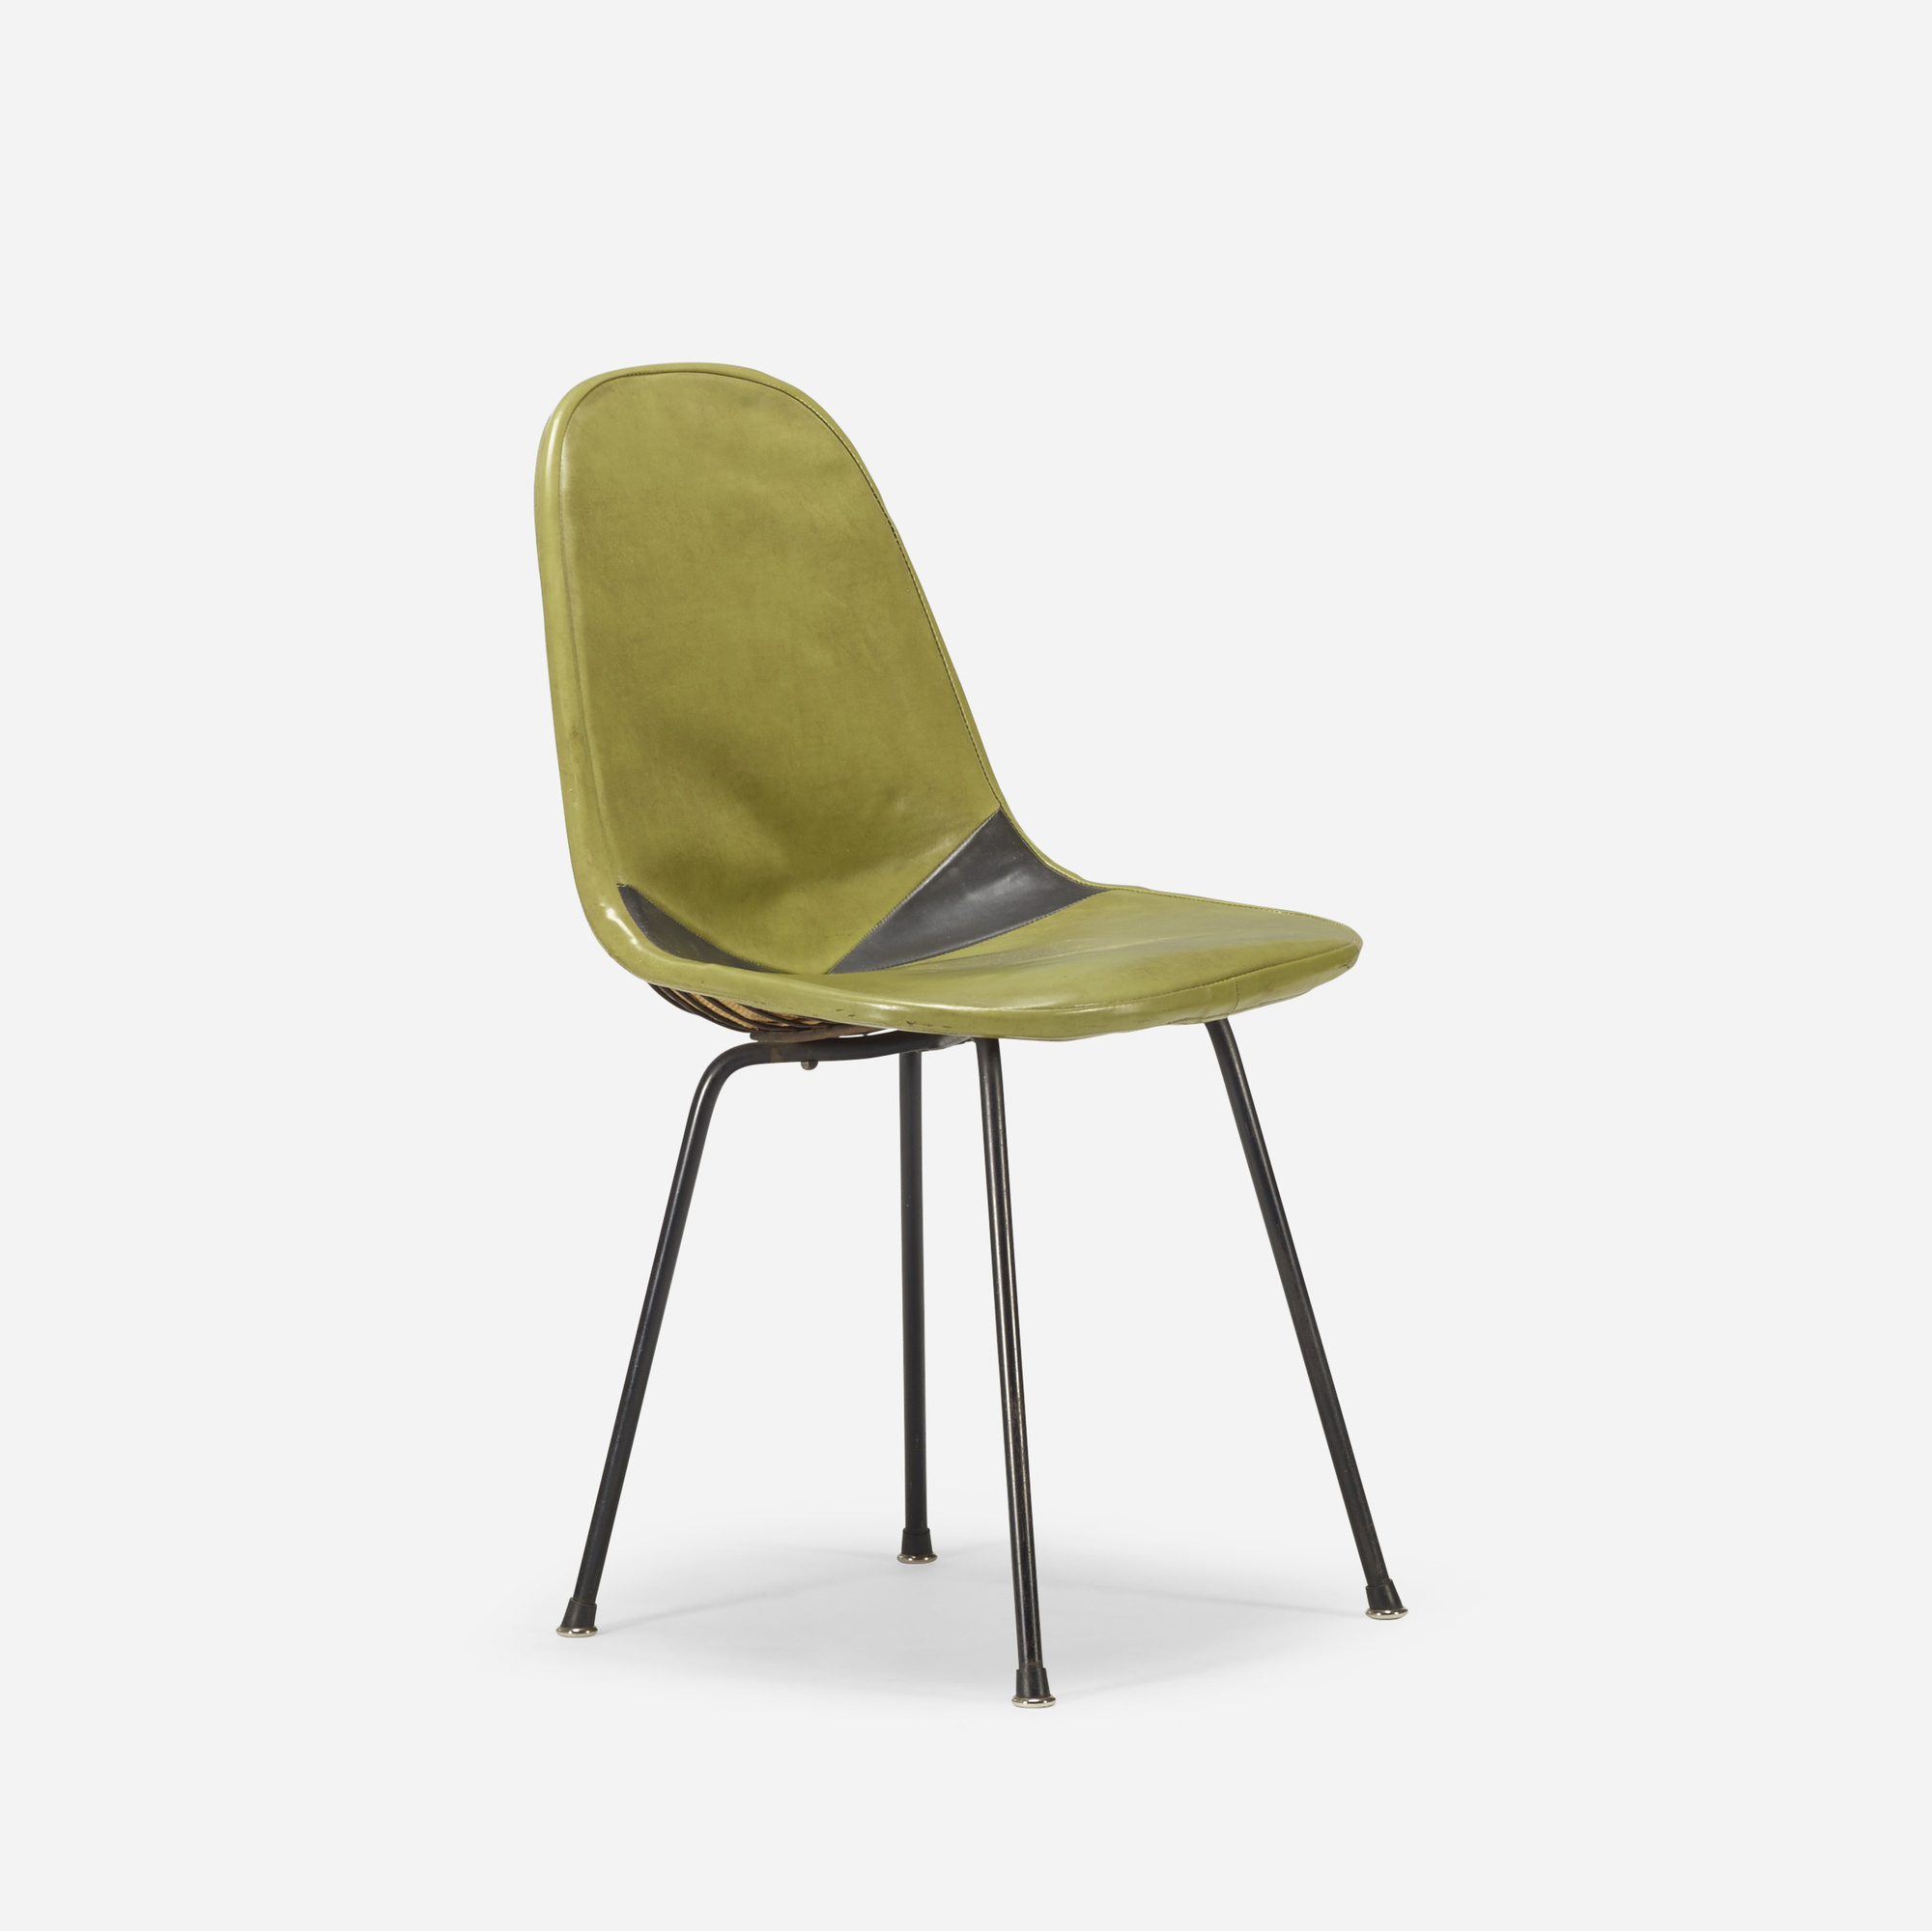 255: Charles and Ray Eames / DKX-1 (1 of 2)